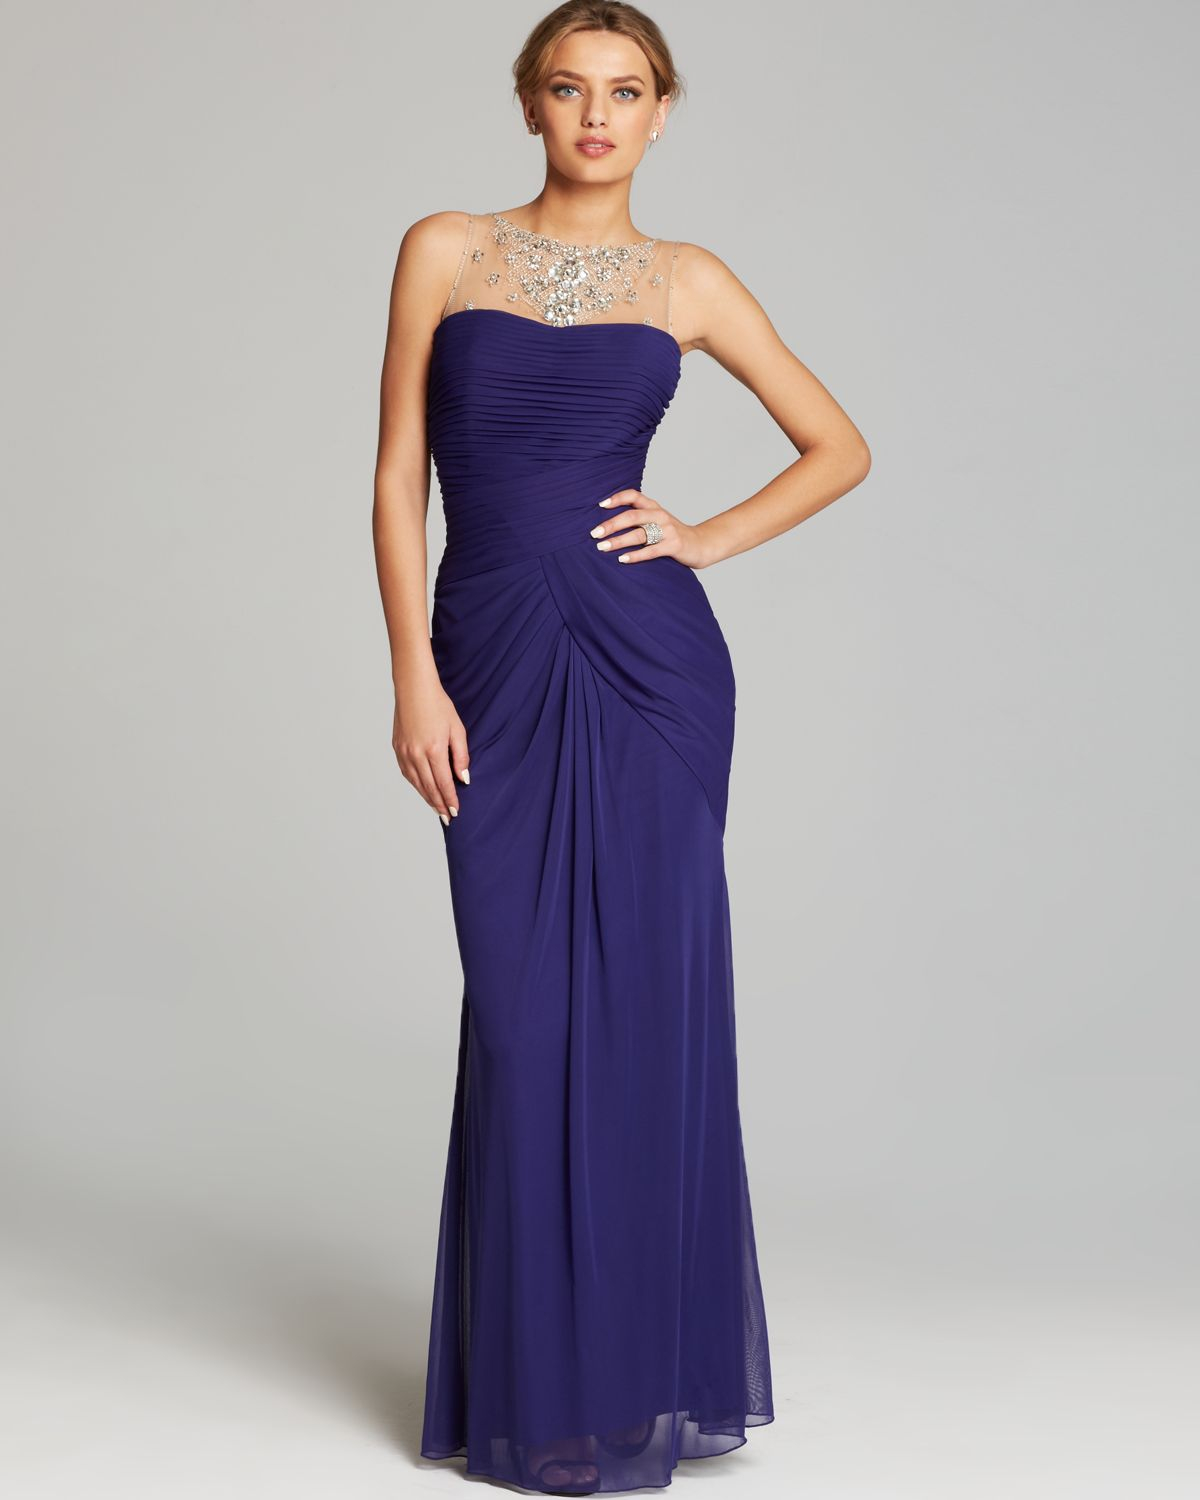 Lyst - Adrianna Papell Gown Sleeveless Illusion Neckline Draped in ...